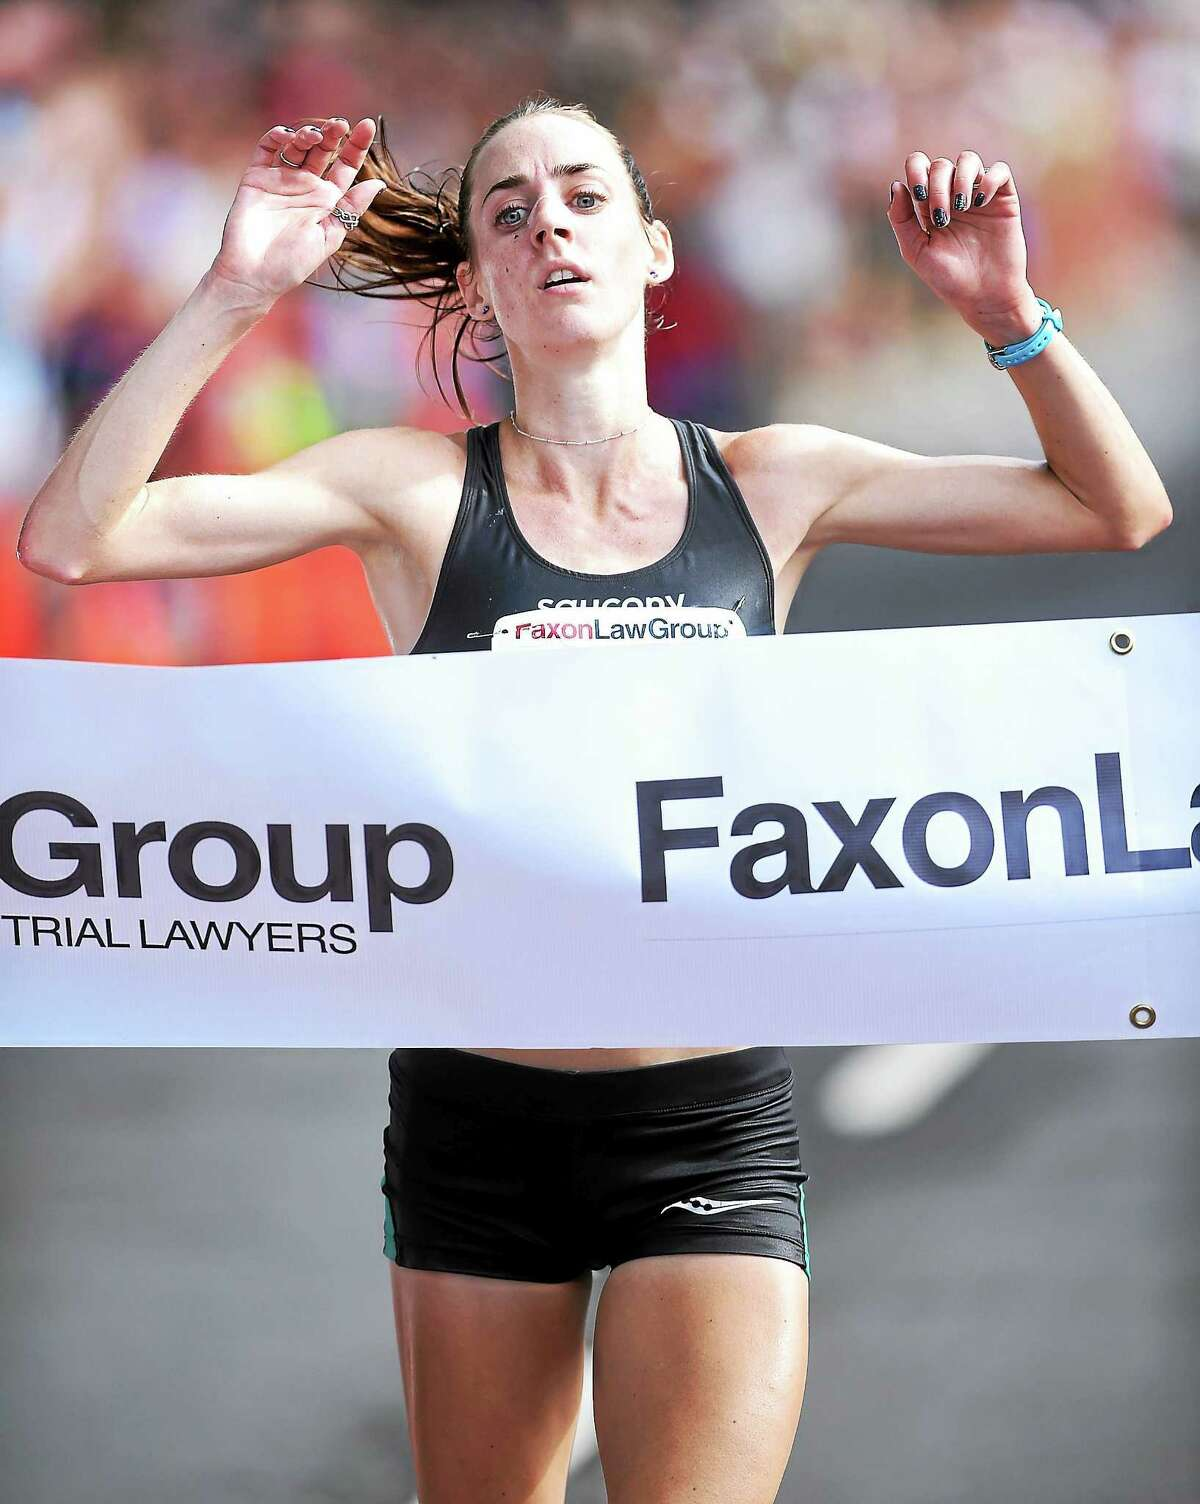 (Arnold Gold-New Haven Register) Molly Huddle crosses the finish line of the 37th Annual Faxon Law New Haven Road Race on 9/1/2014. She was the first women's finisher.